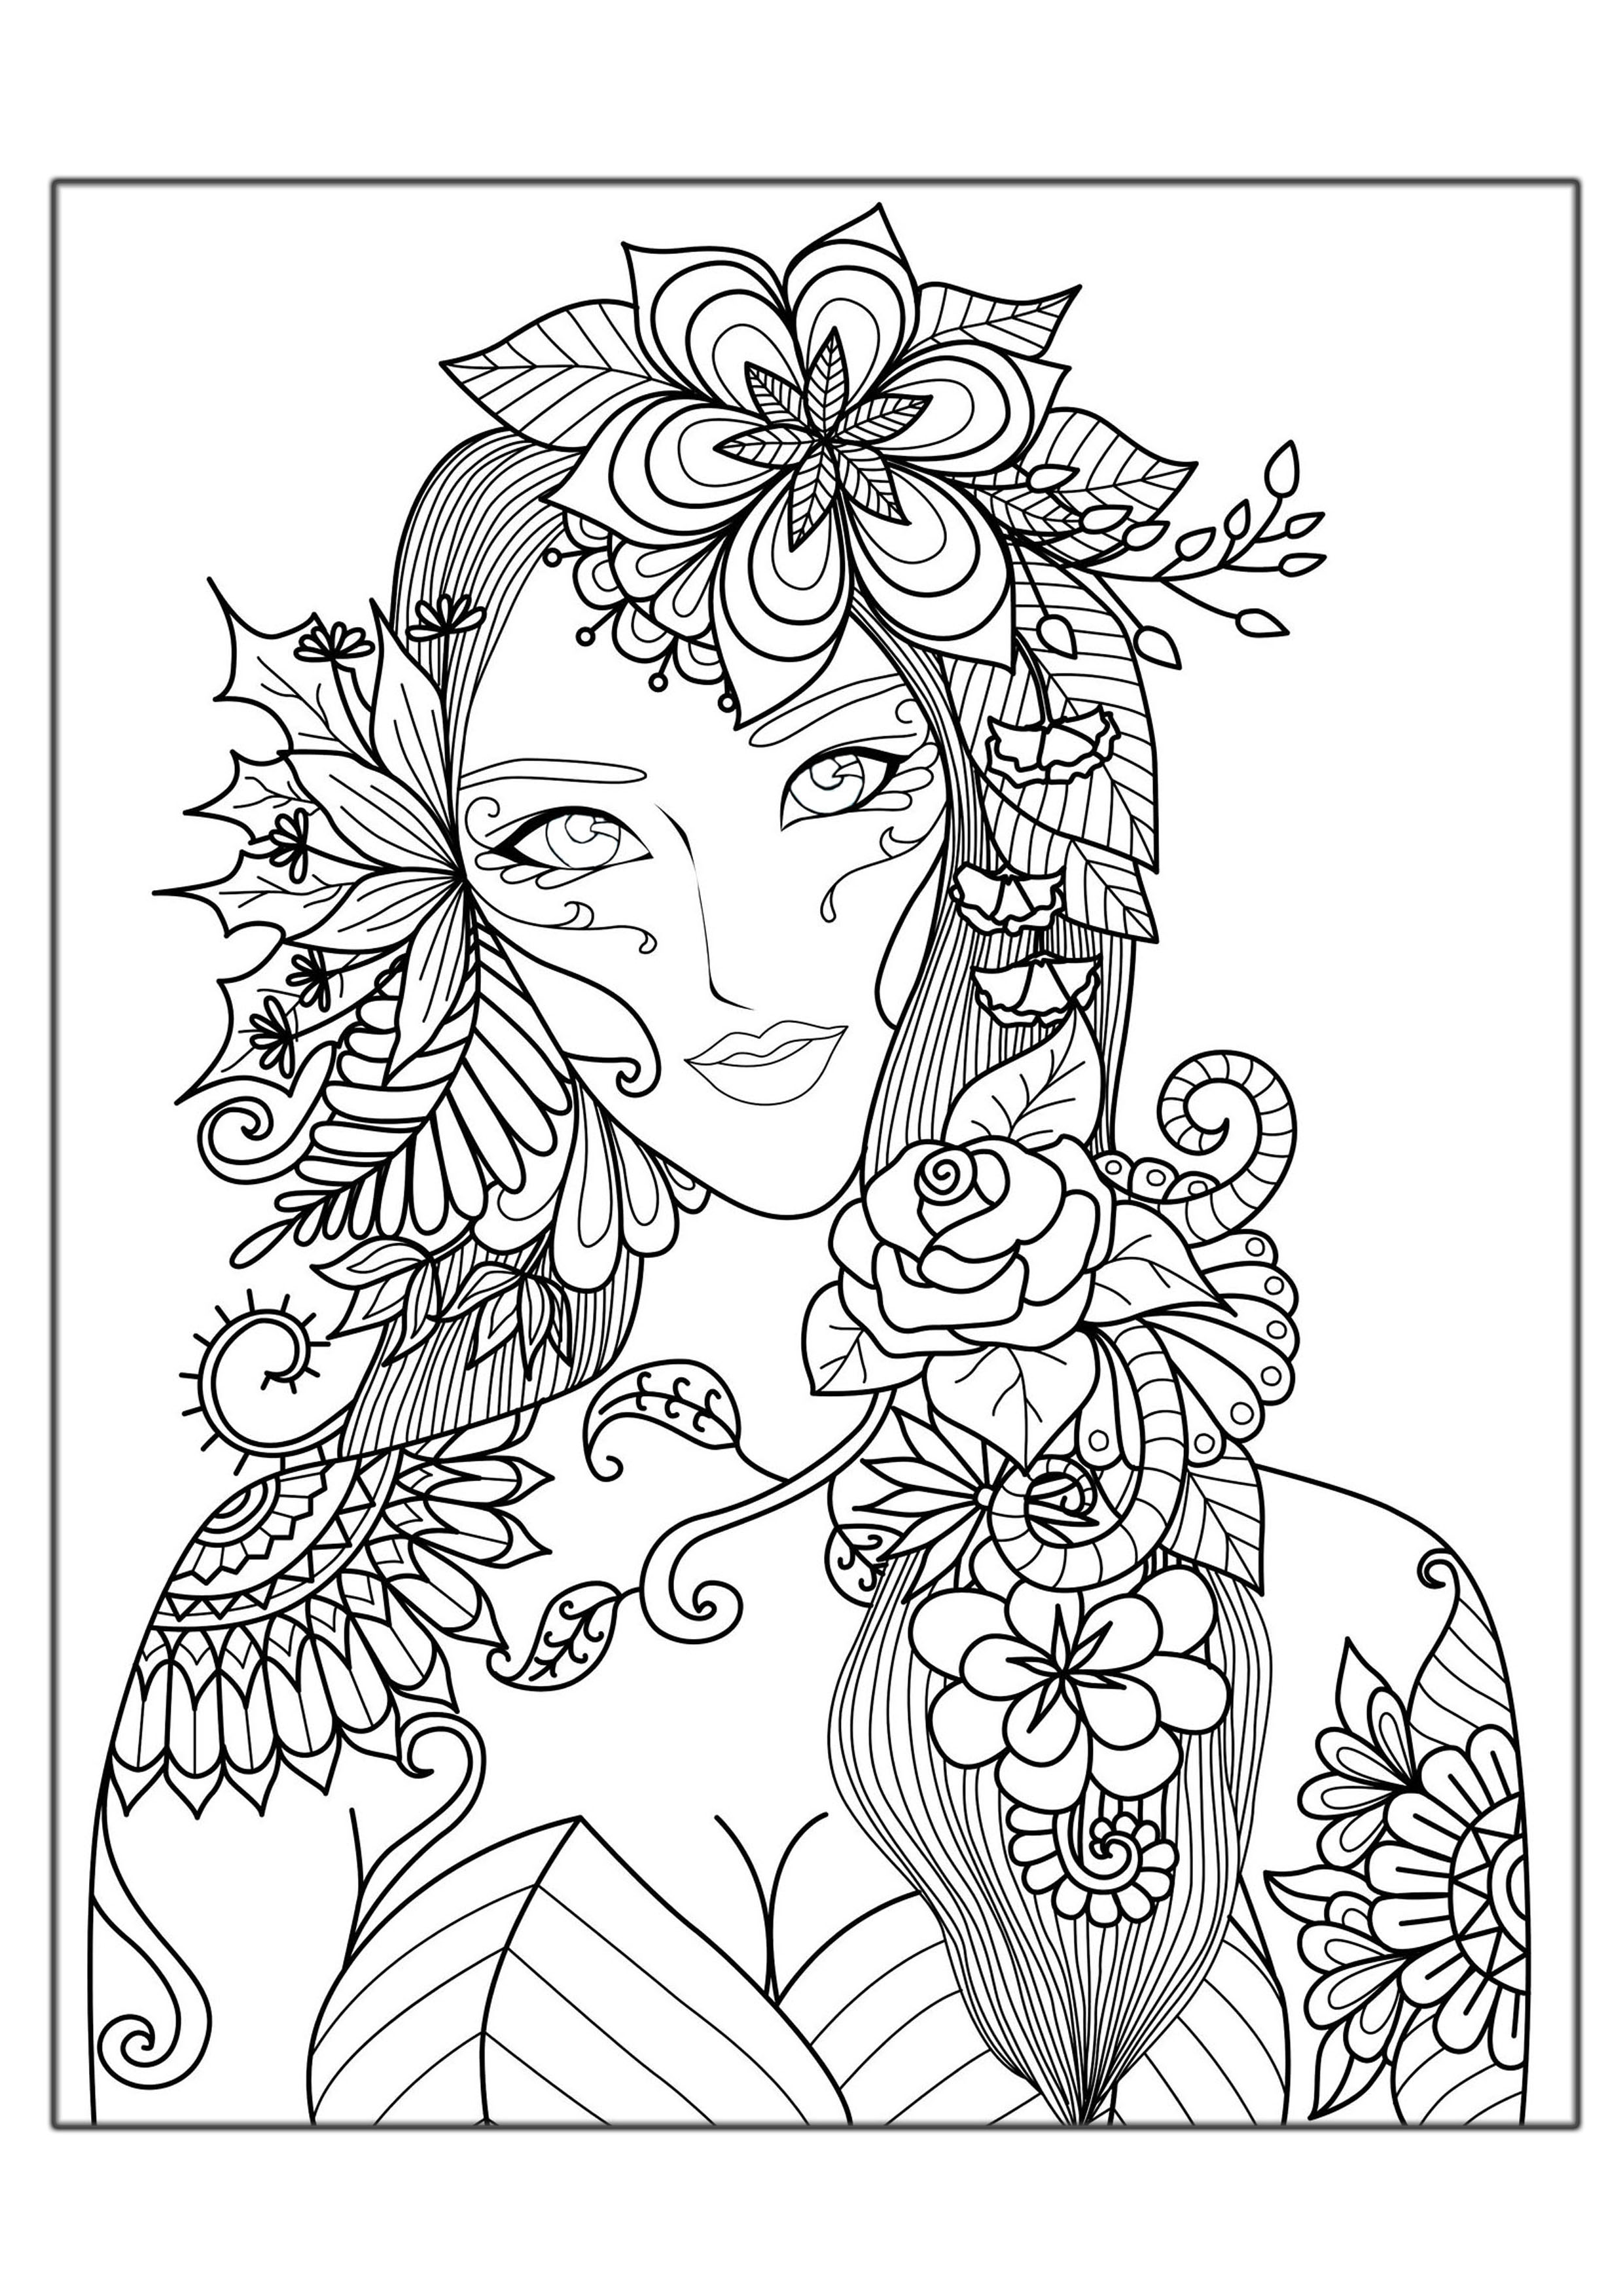 coloring pages for print hard coloring pages for adults best coloring pages for kids coloring for pages print